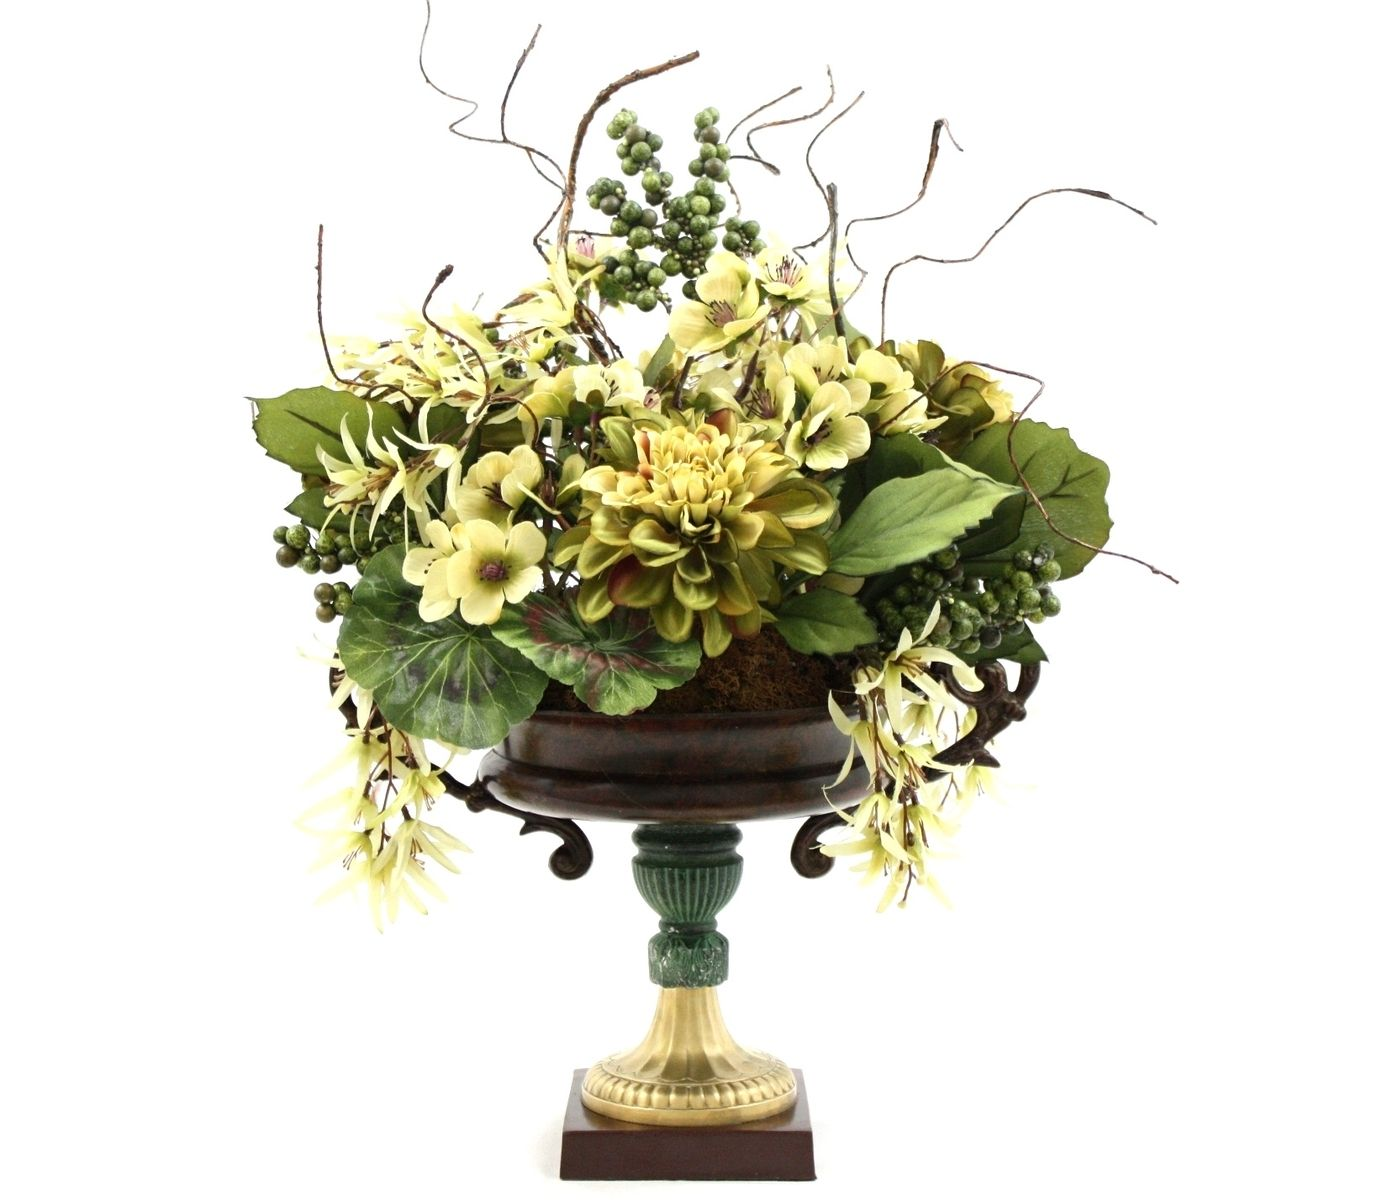 Hand made dining table centerpiece silk flower arrangement for Table centerpiece ideas for home